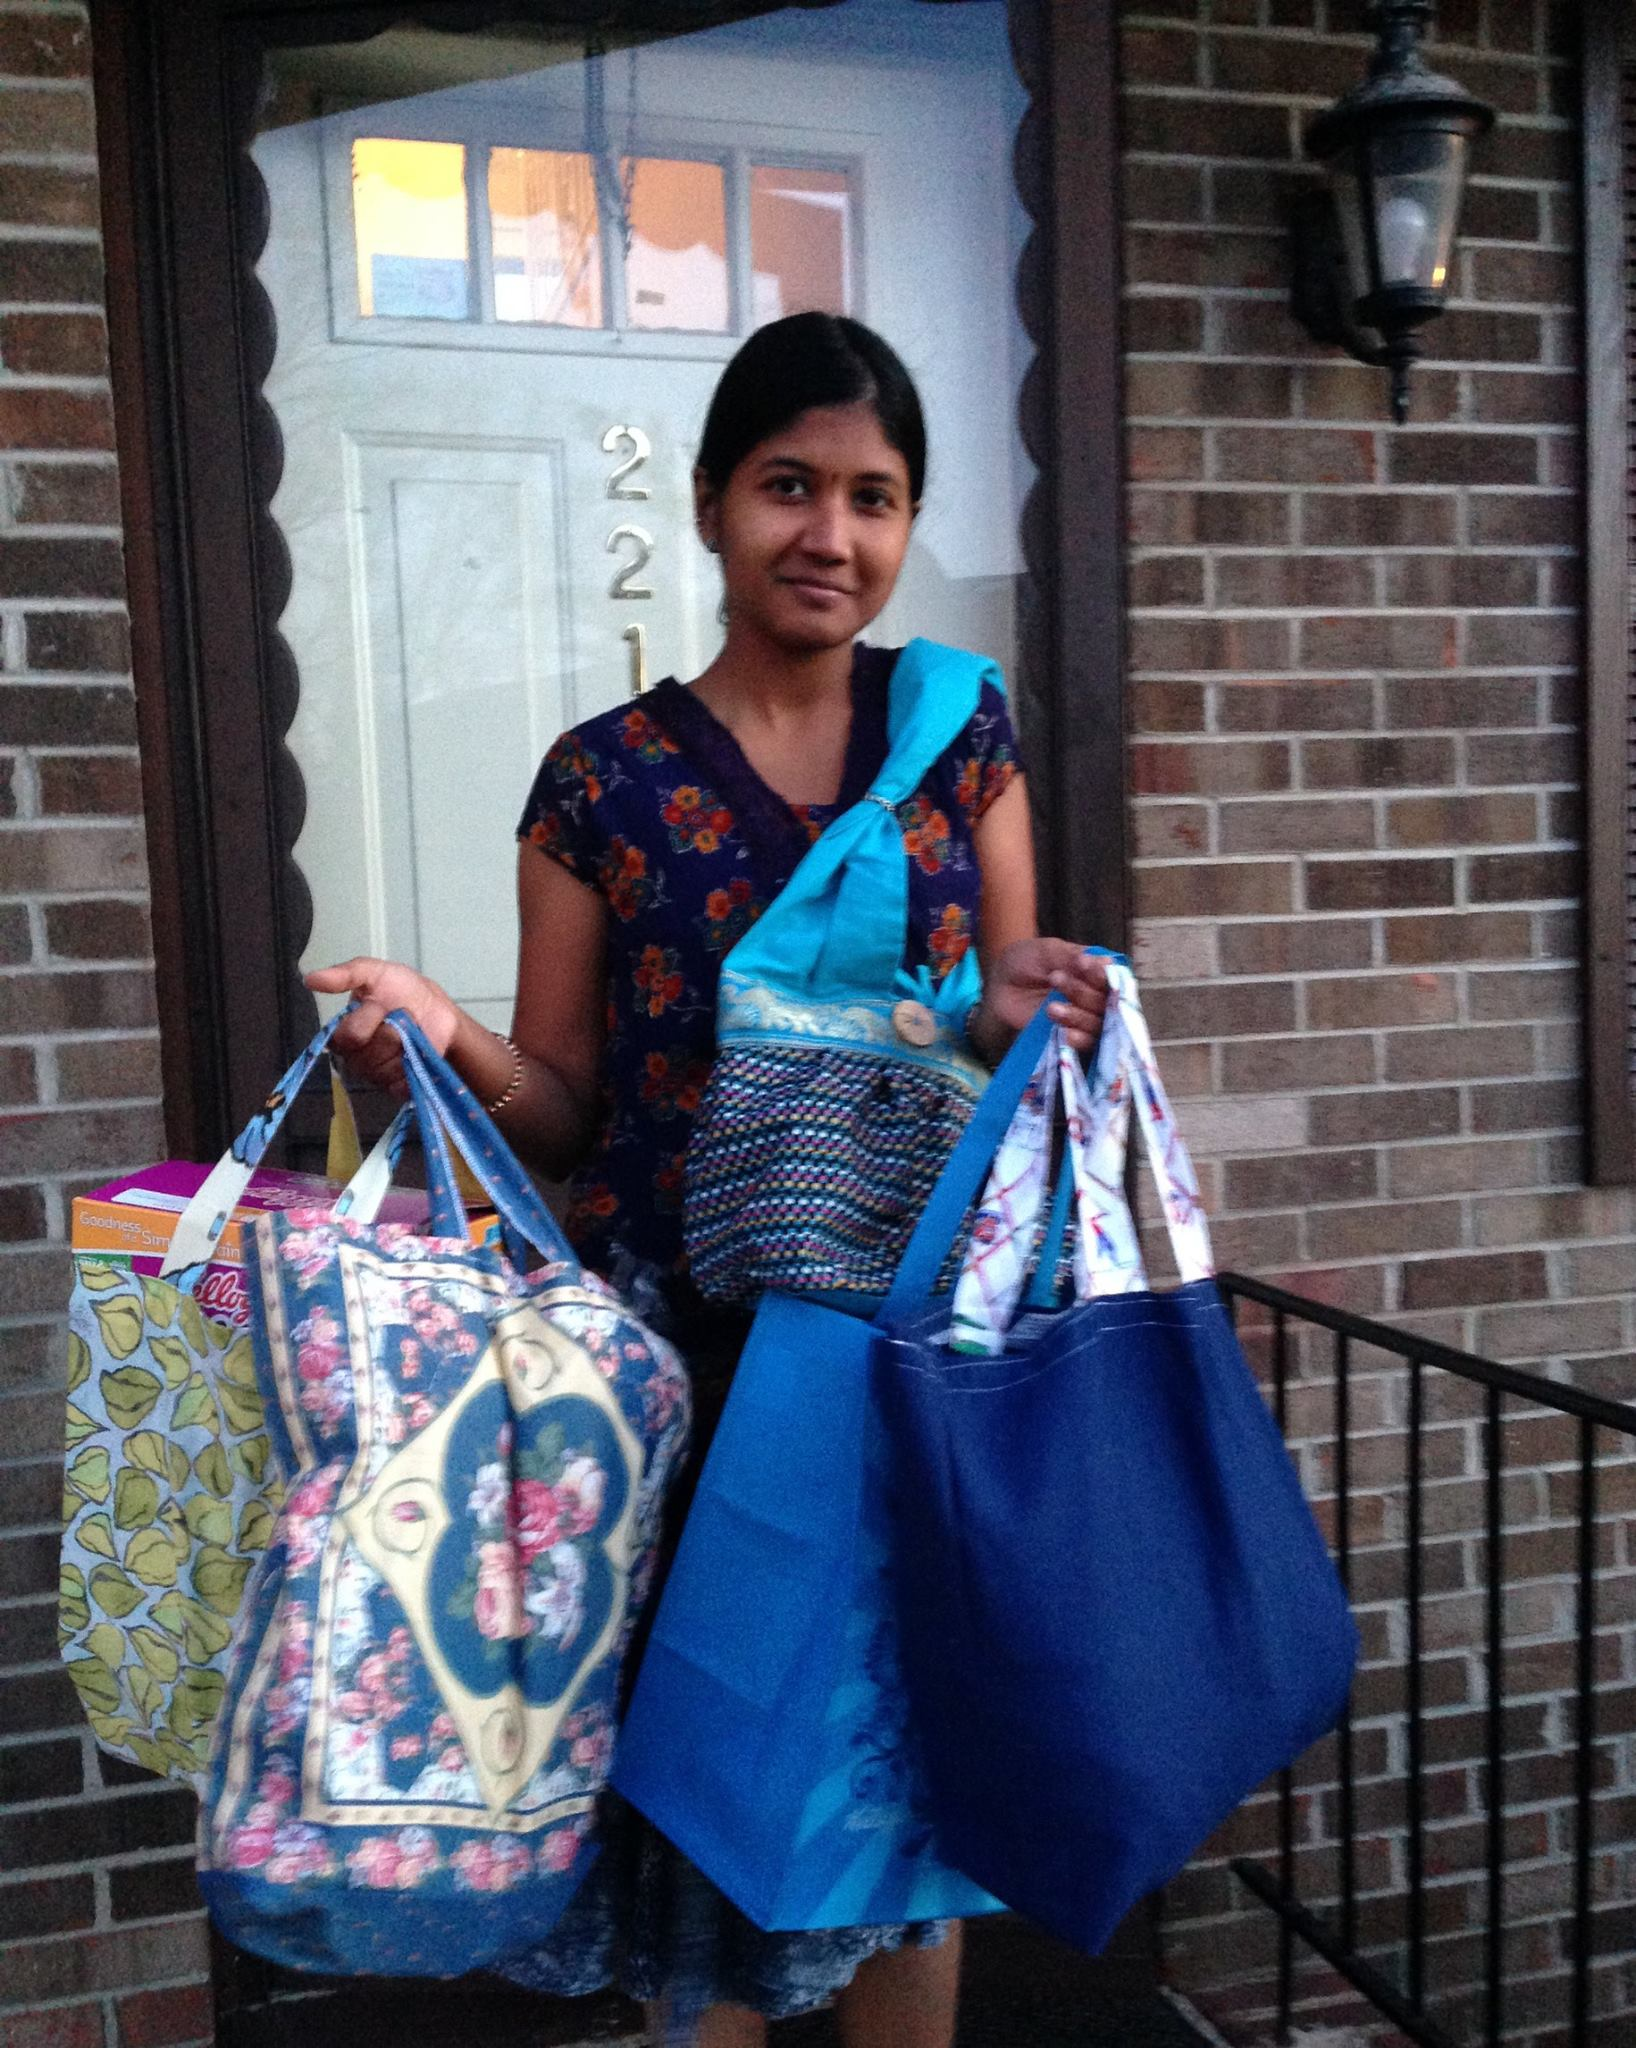 Green Bag Lady donated shopping bags